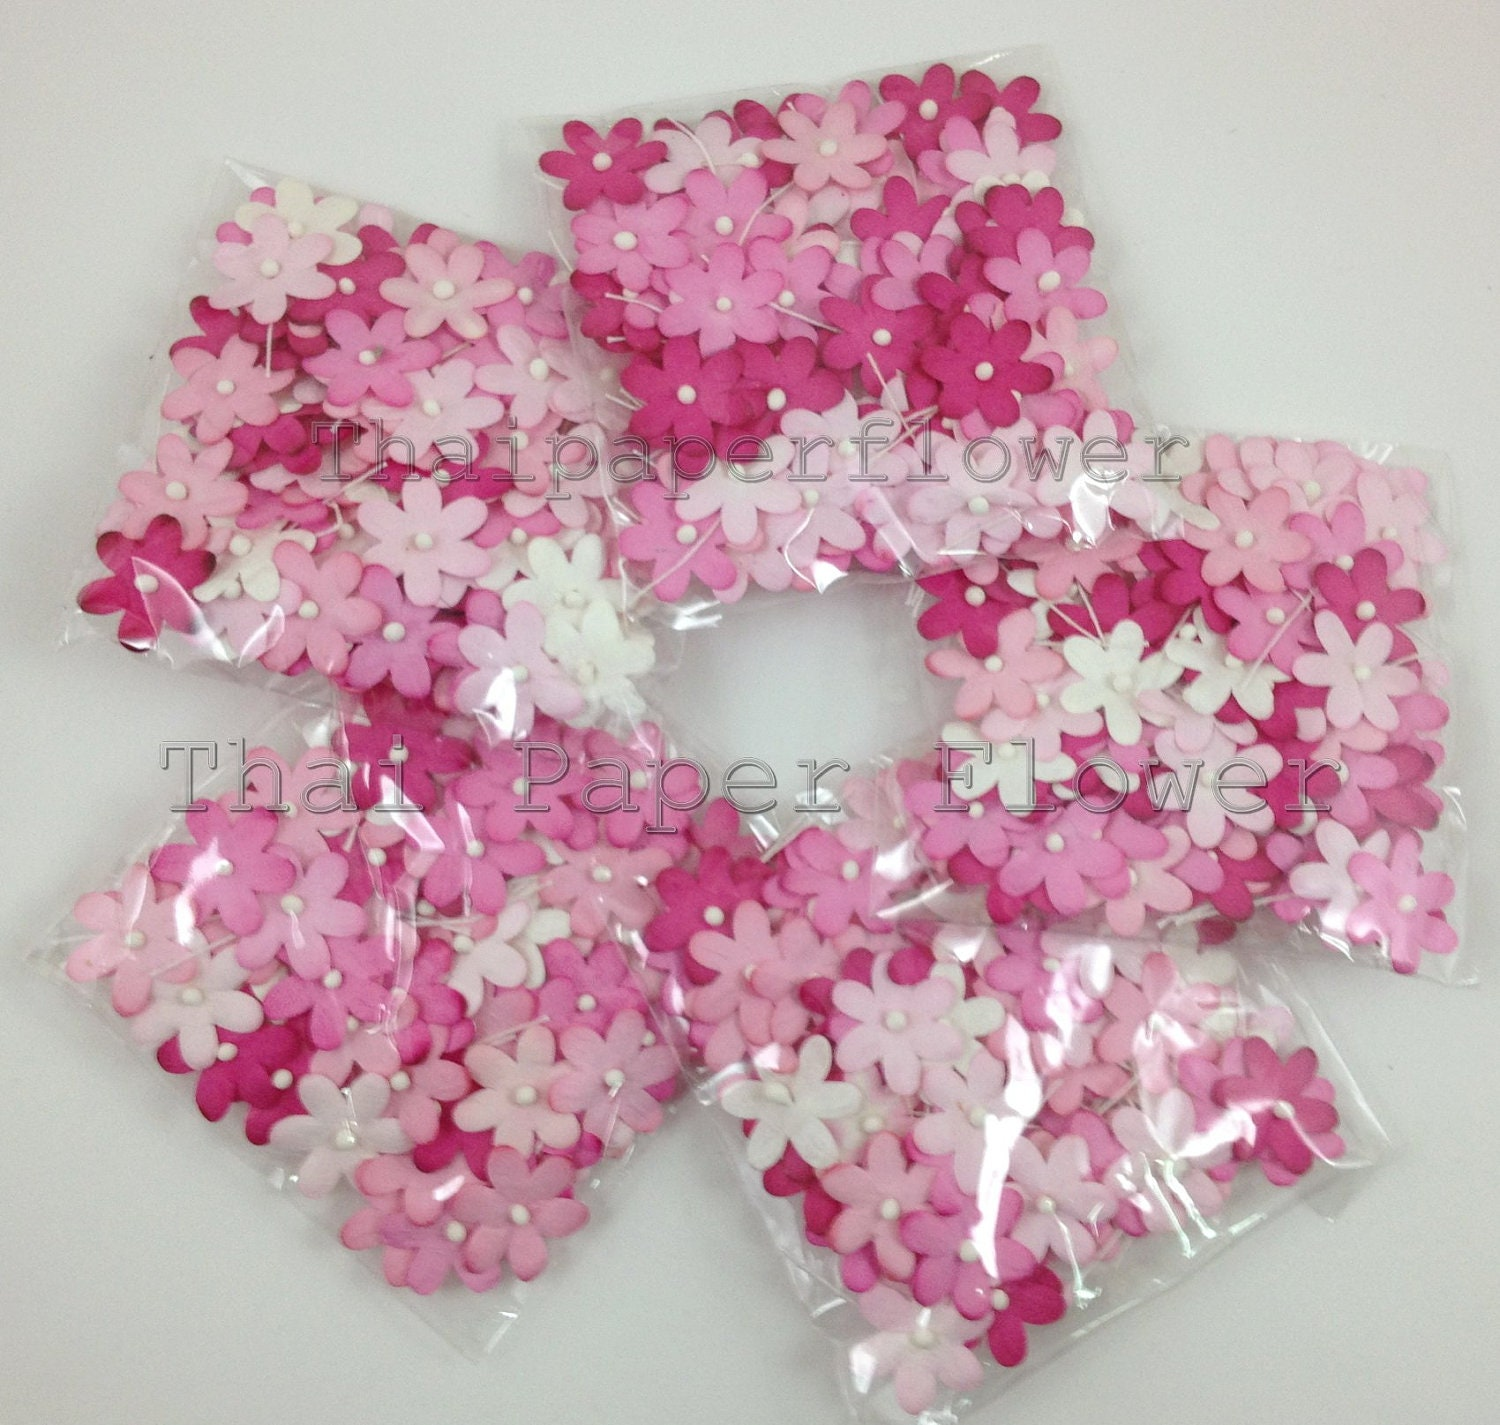 Small flowers for crafts -  12 99